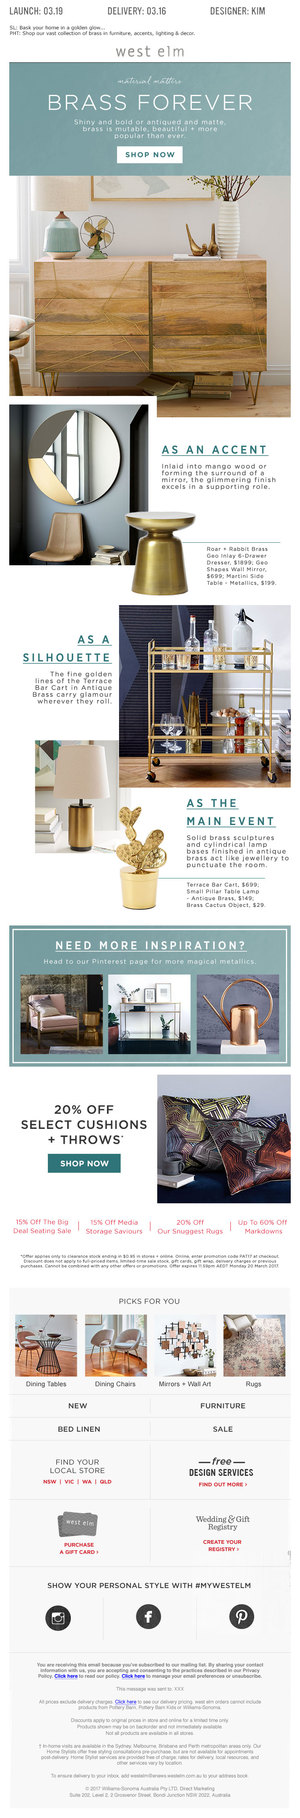 WEST ELM EDM - BRASS DECOR